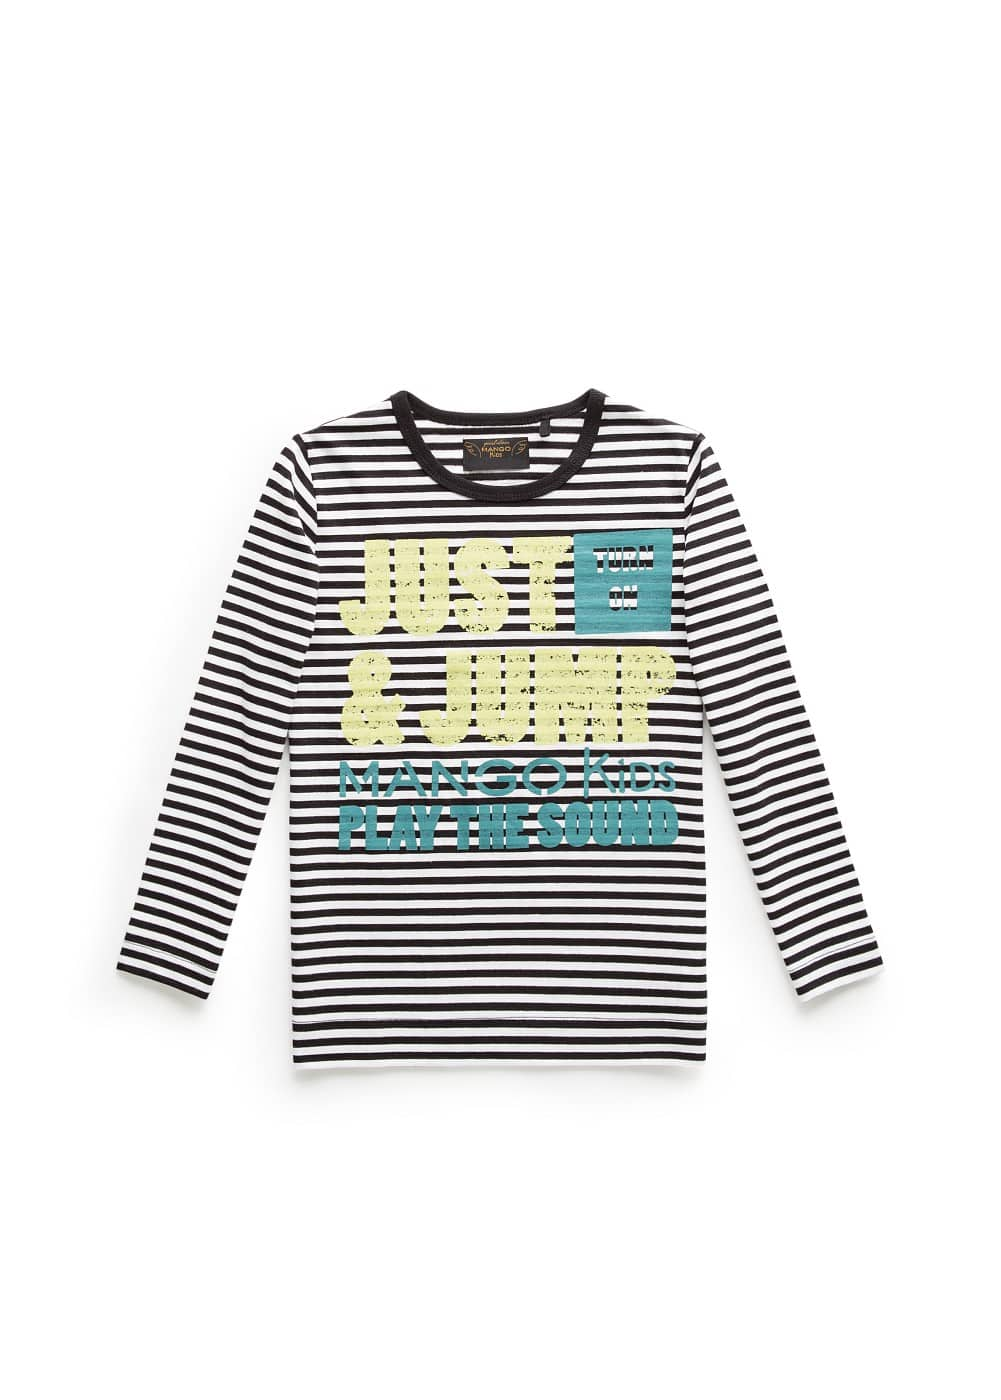 Typographic print striped t-shirt